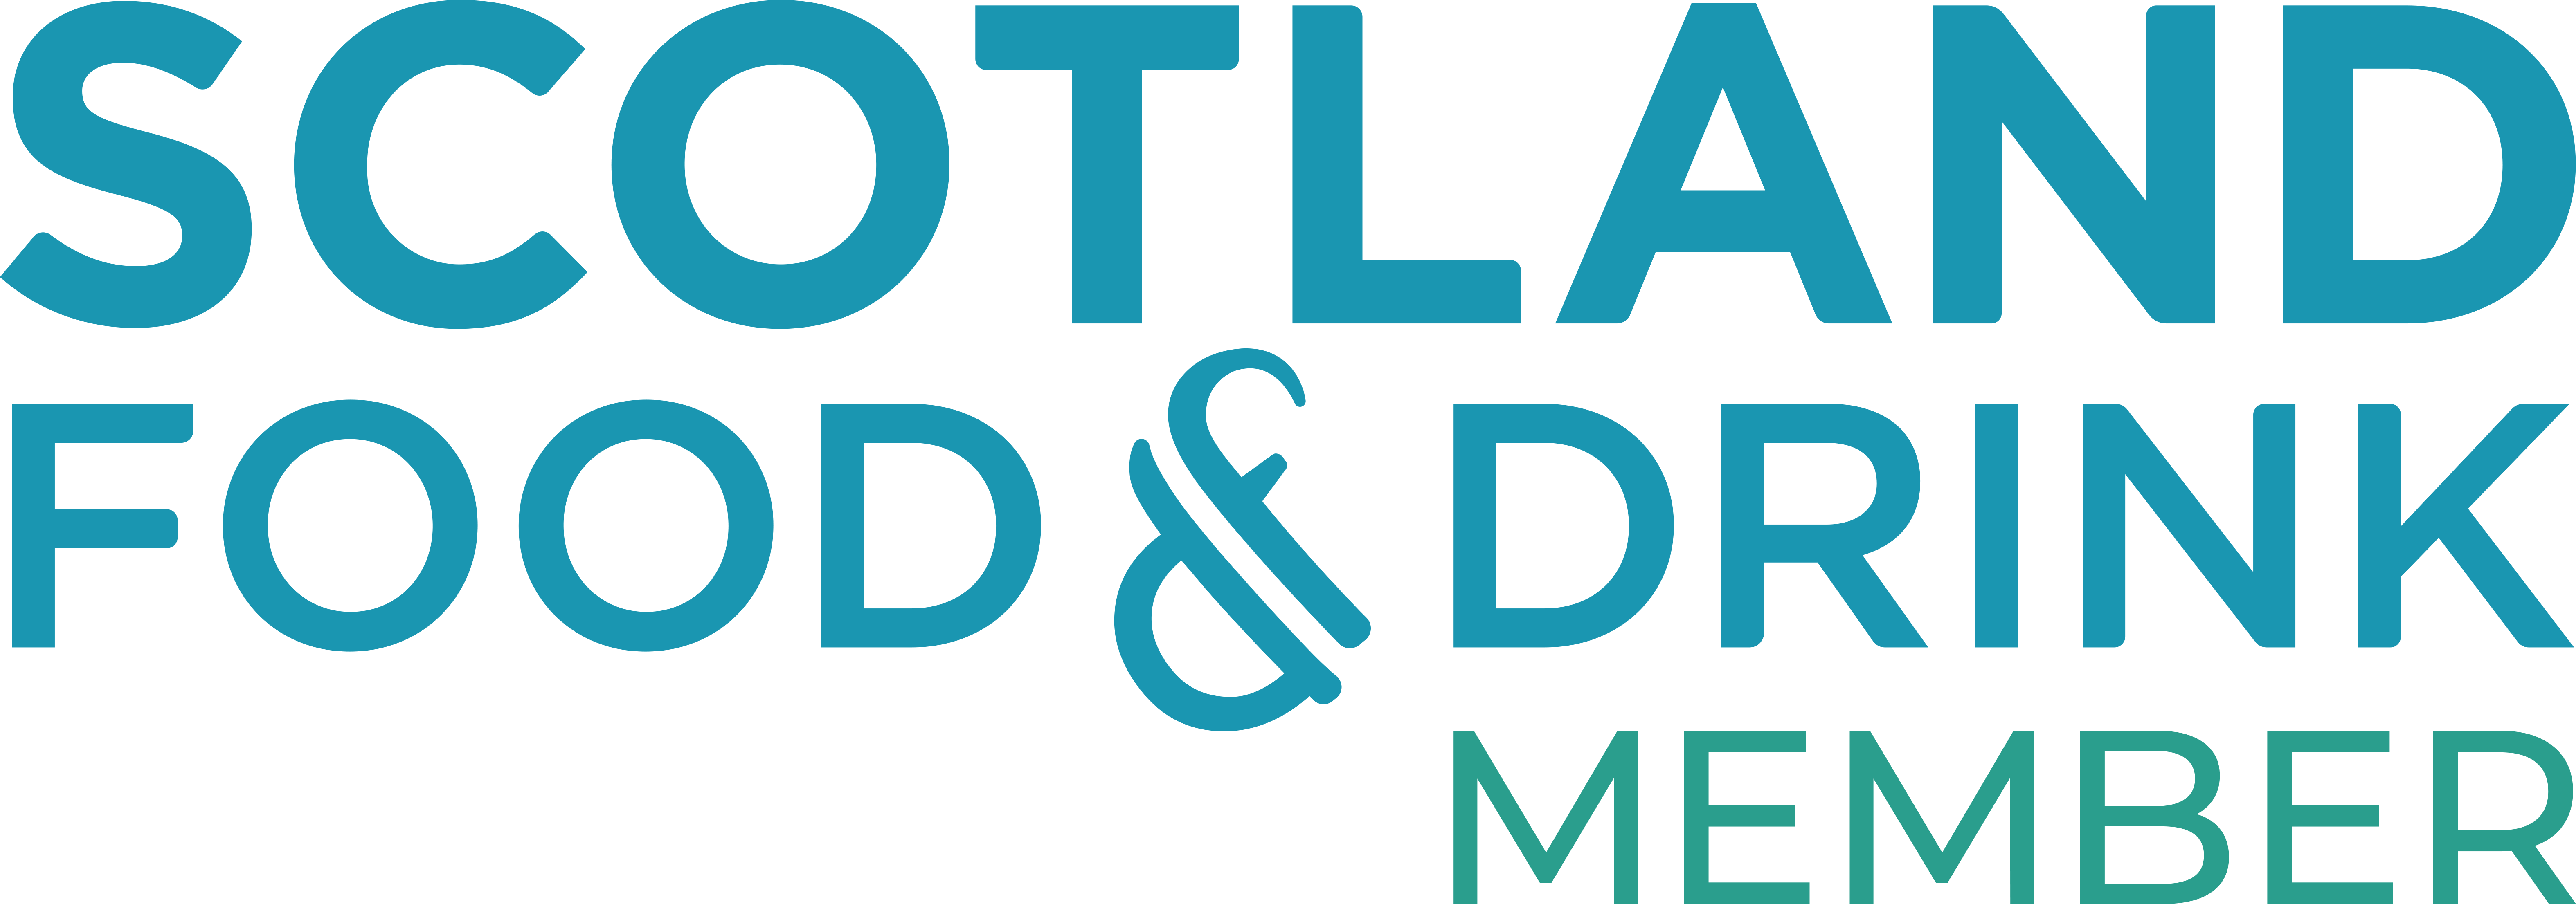 Scotland Food and Drink Member